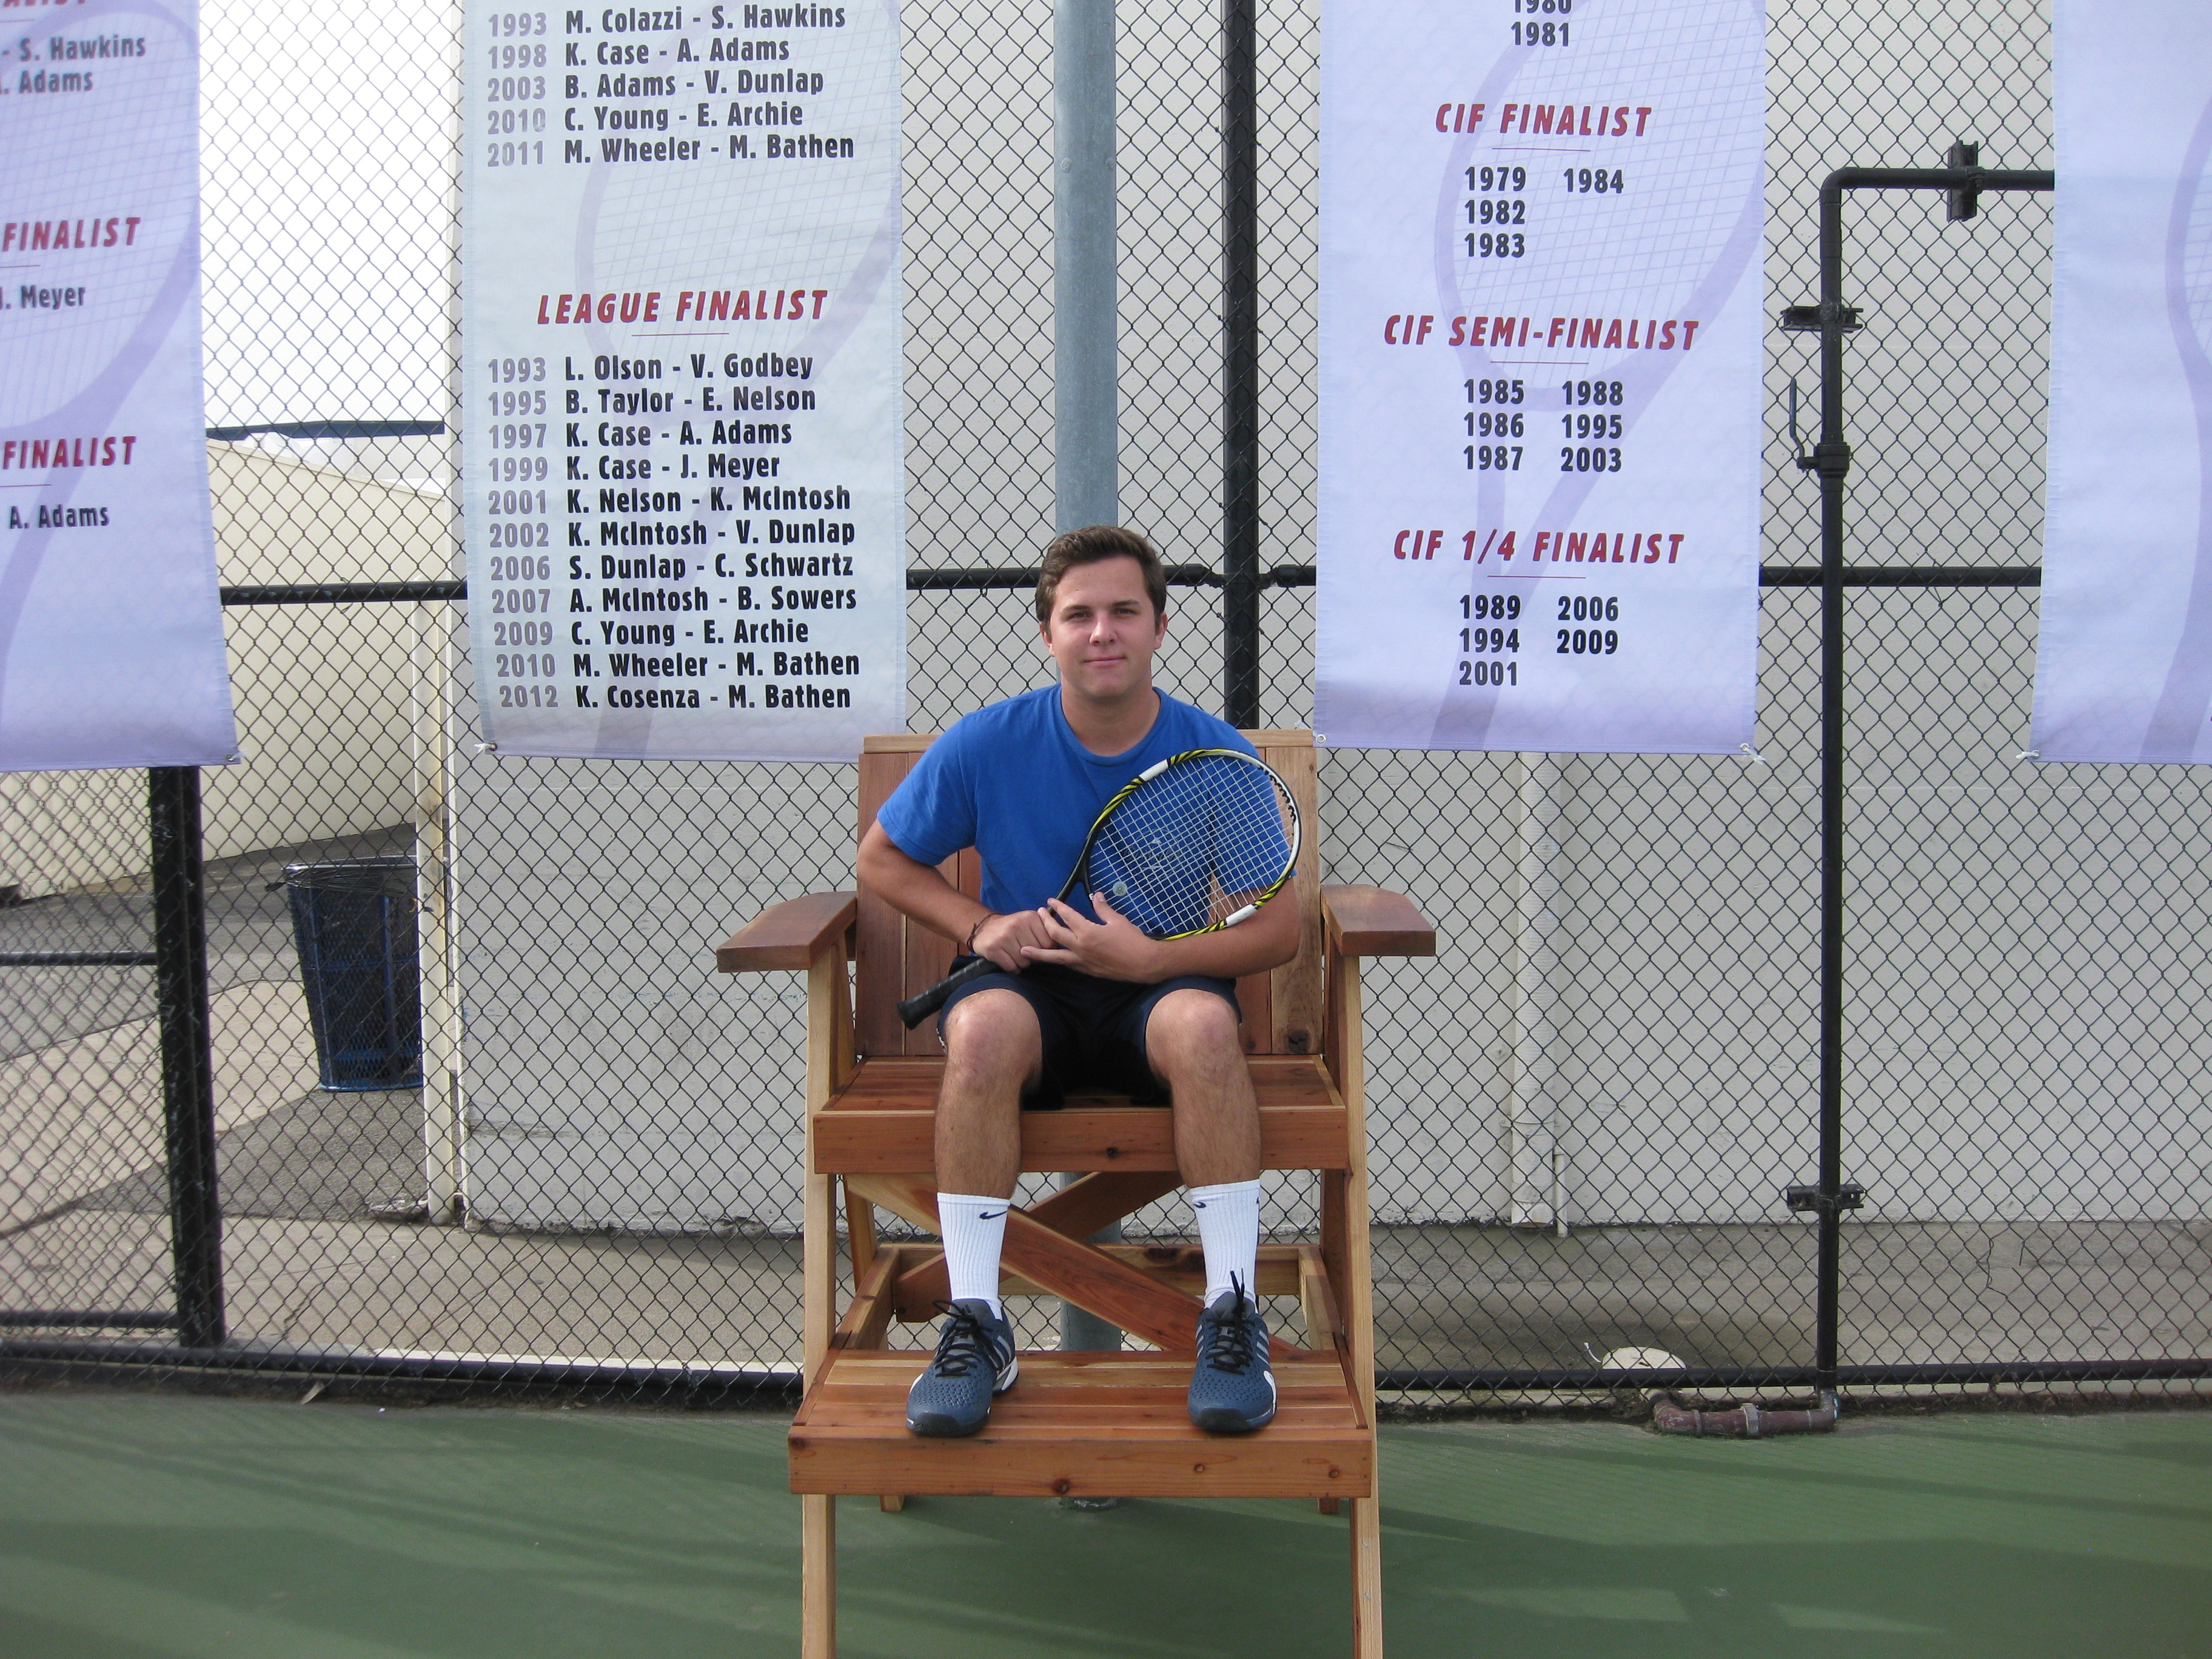 Thank you to senior David Schaefer on donating your hand-made tennis chairs to  the NH Tennis Program! And Congratulations on your Eagle Scout honors, we are  so proud of you!